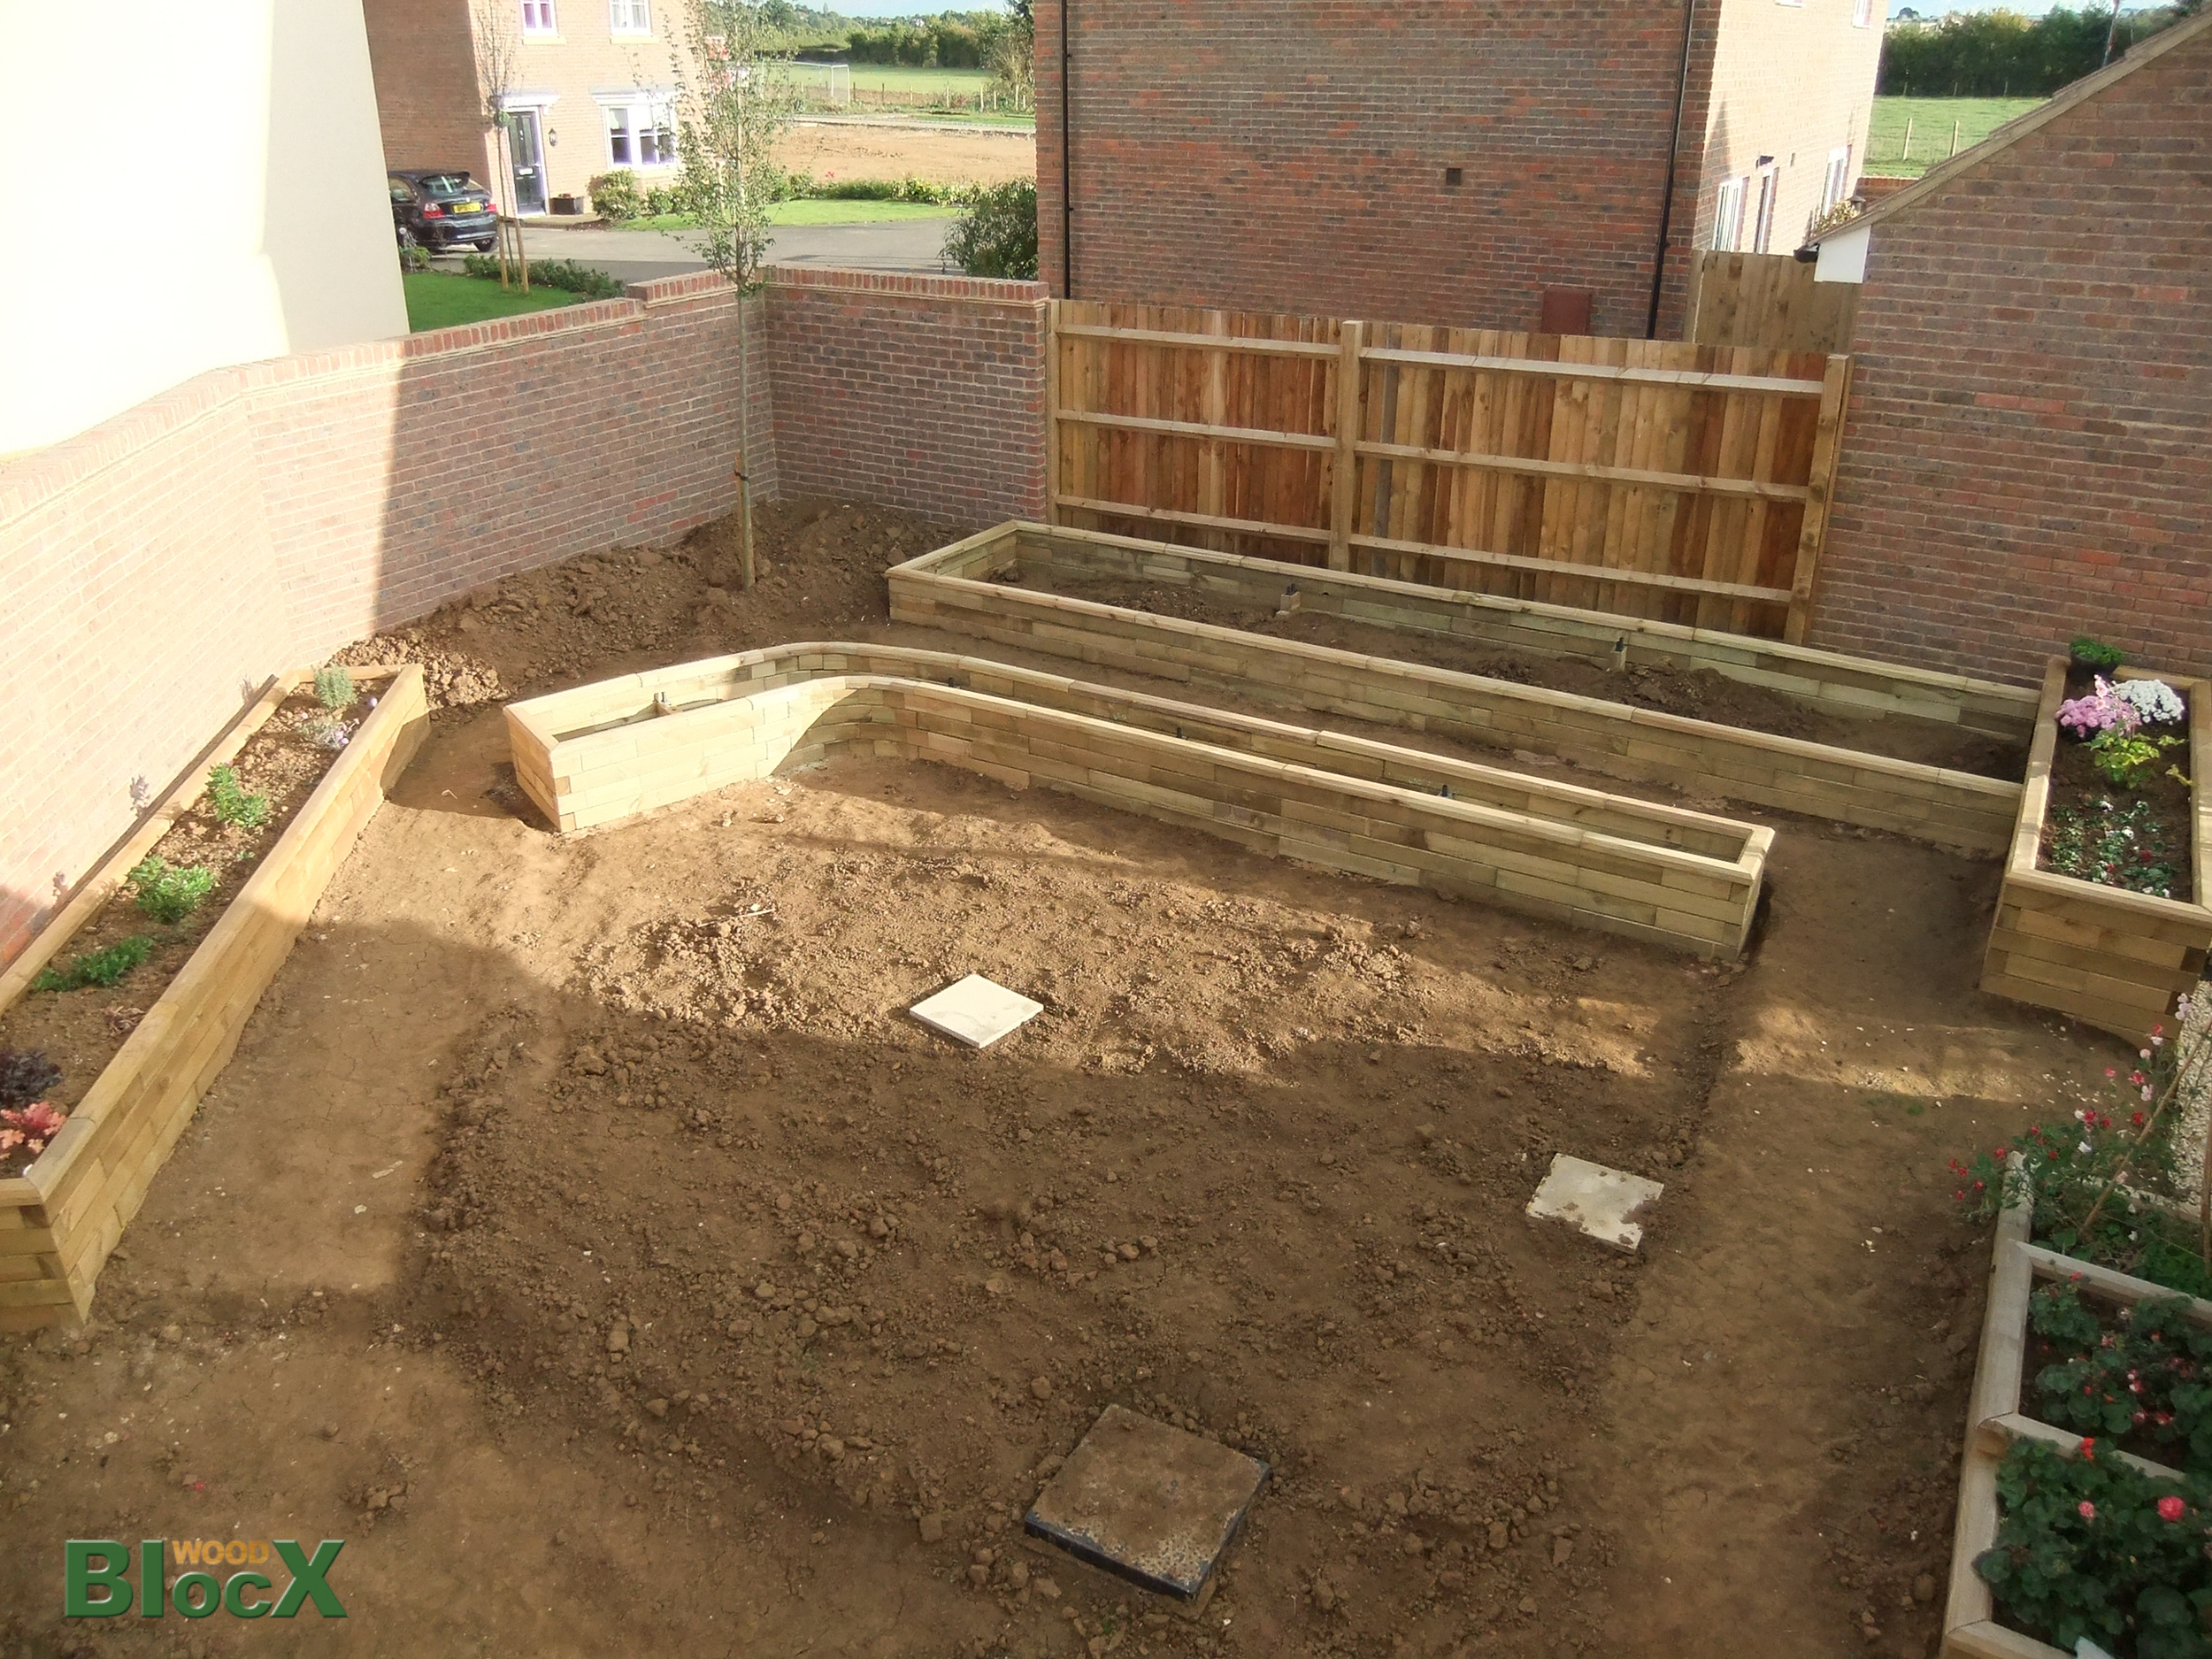 Making a garden from scratch easy with woodblocx raised for Designing a garden from scratch